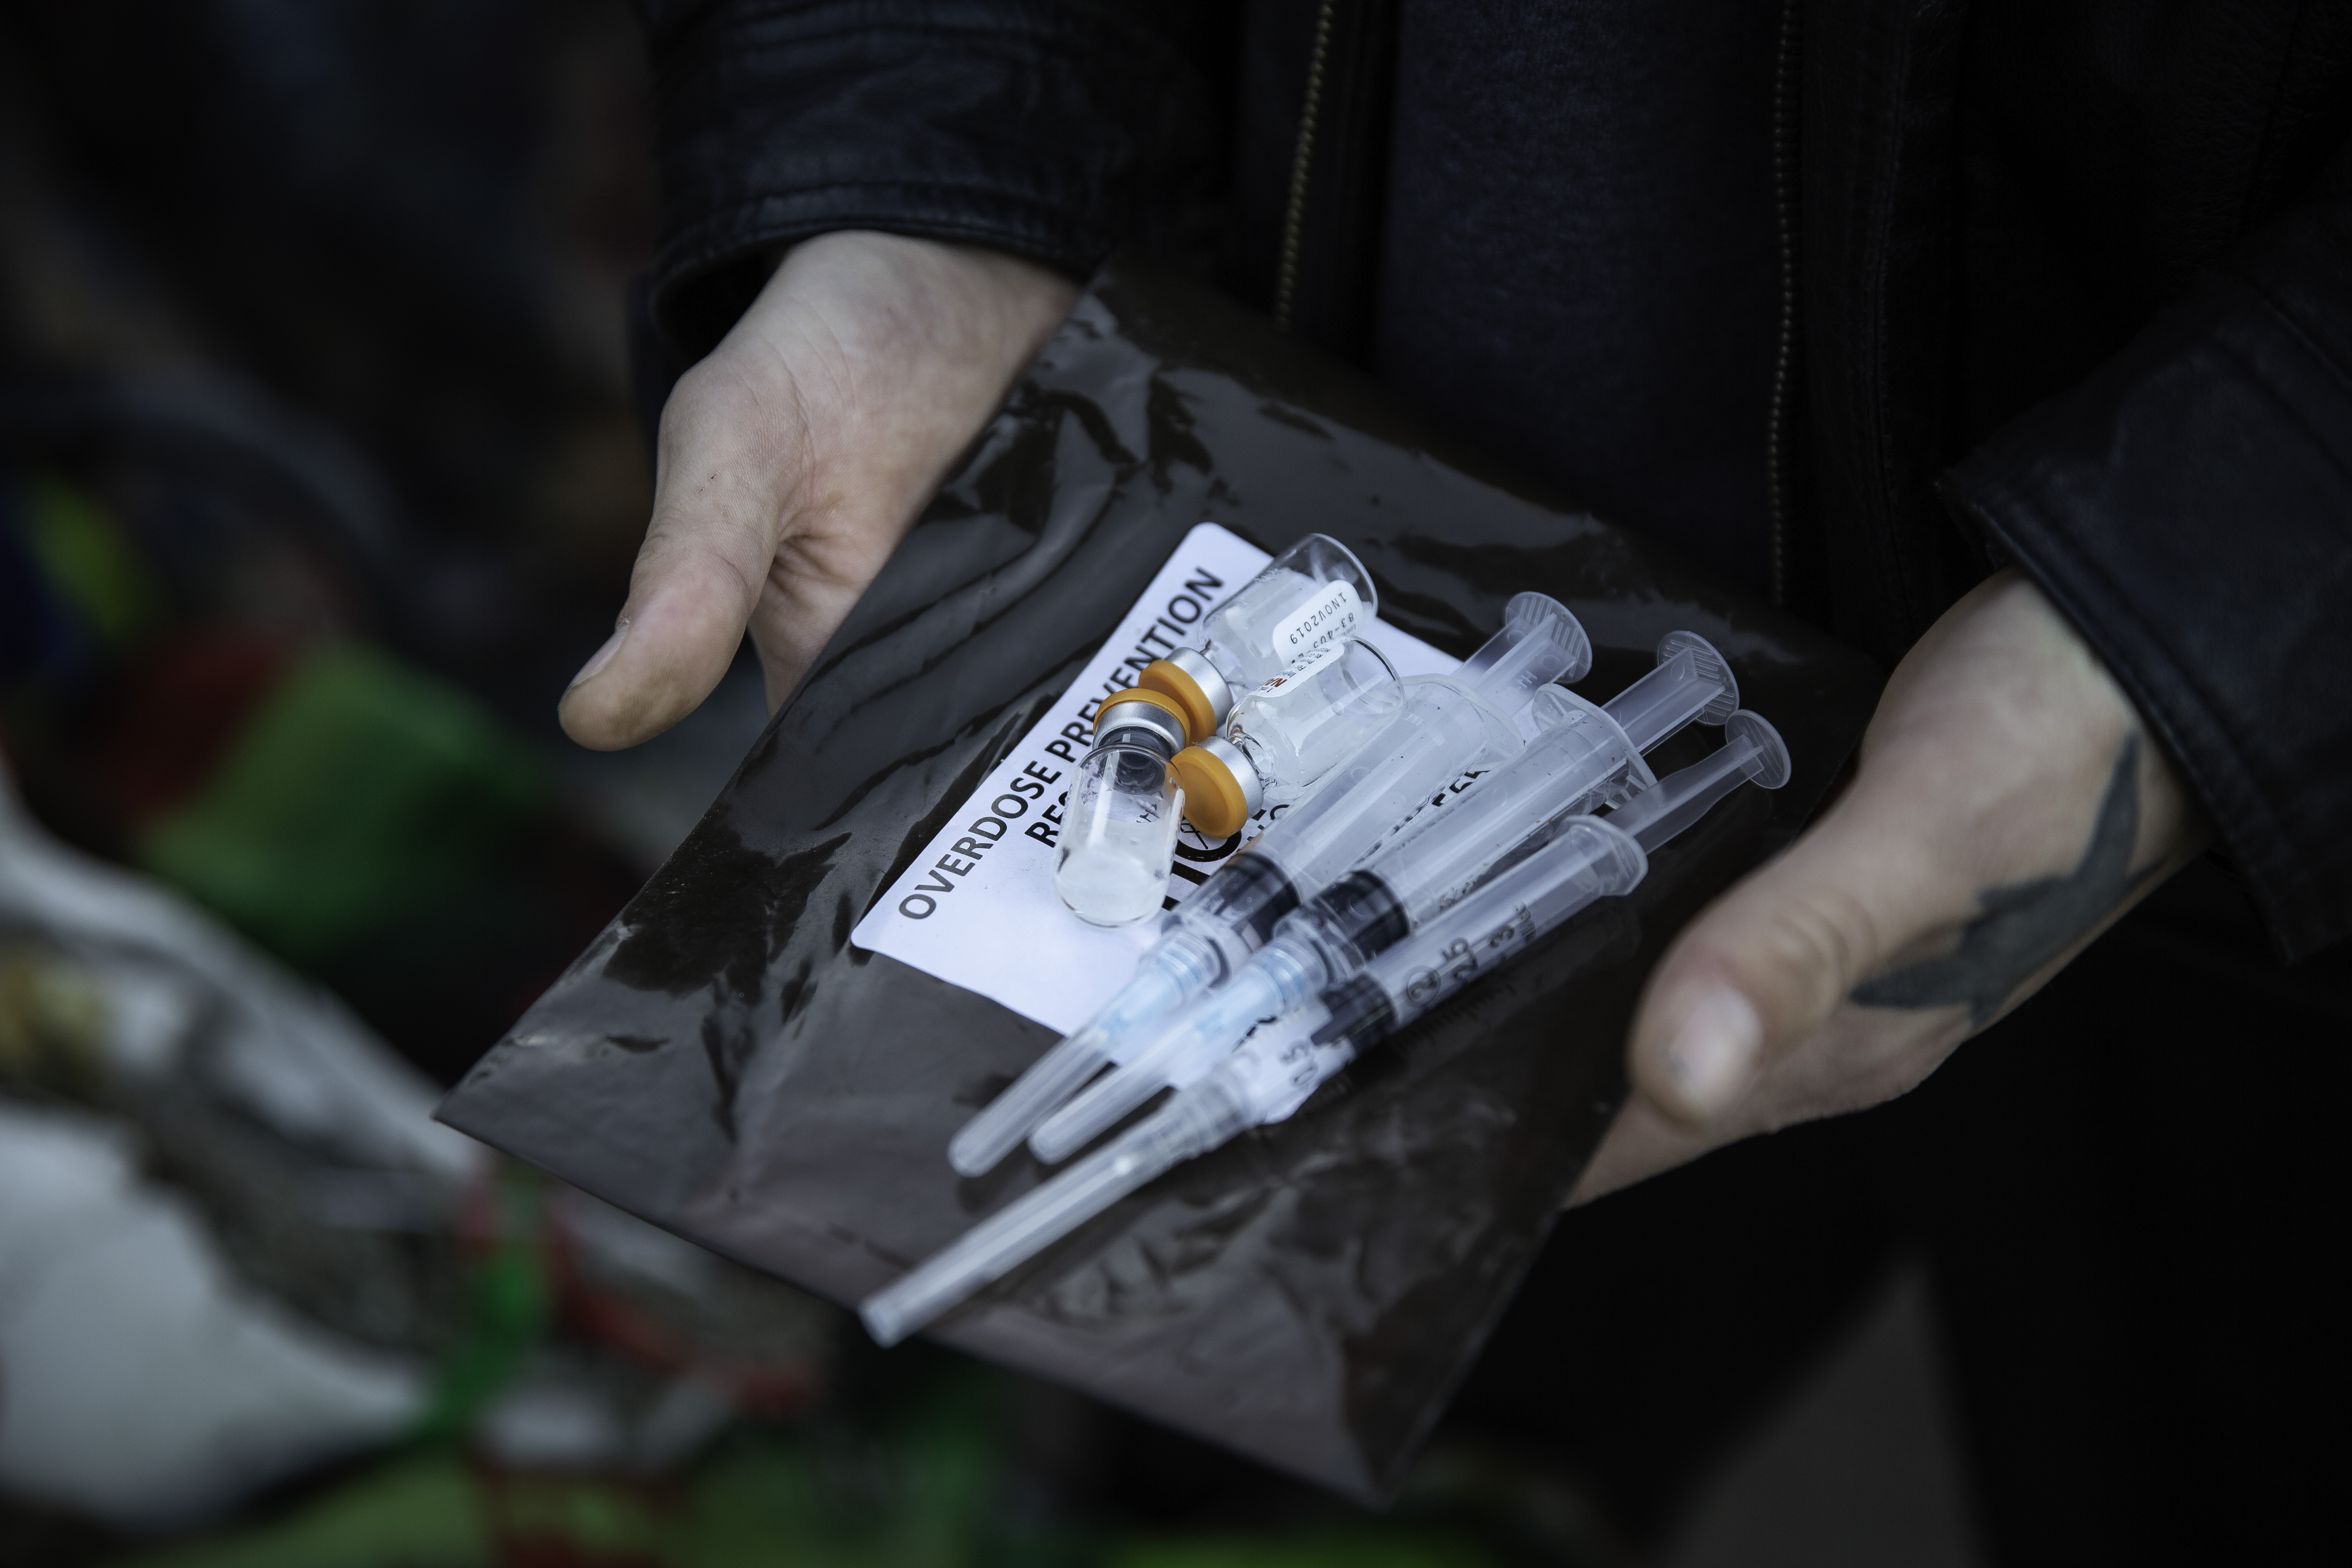 Narcan kits are available at a homeless encampment in Minneapolis, Minnesota on October 22, 2018. (KEREM YUCEL/AFP/Getty Images)